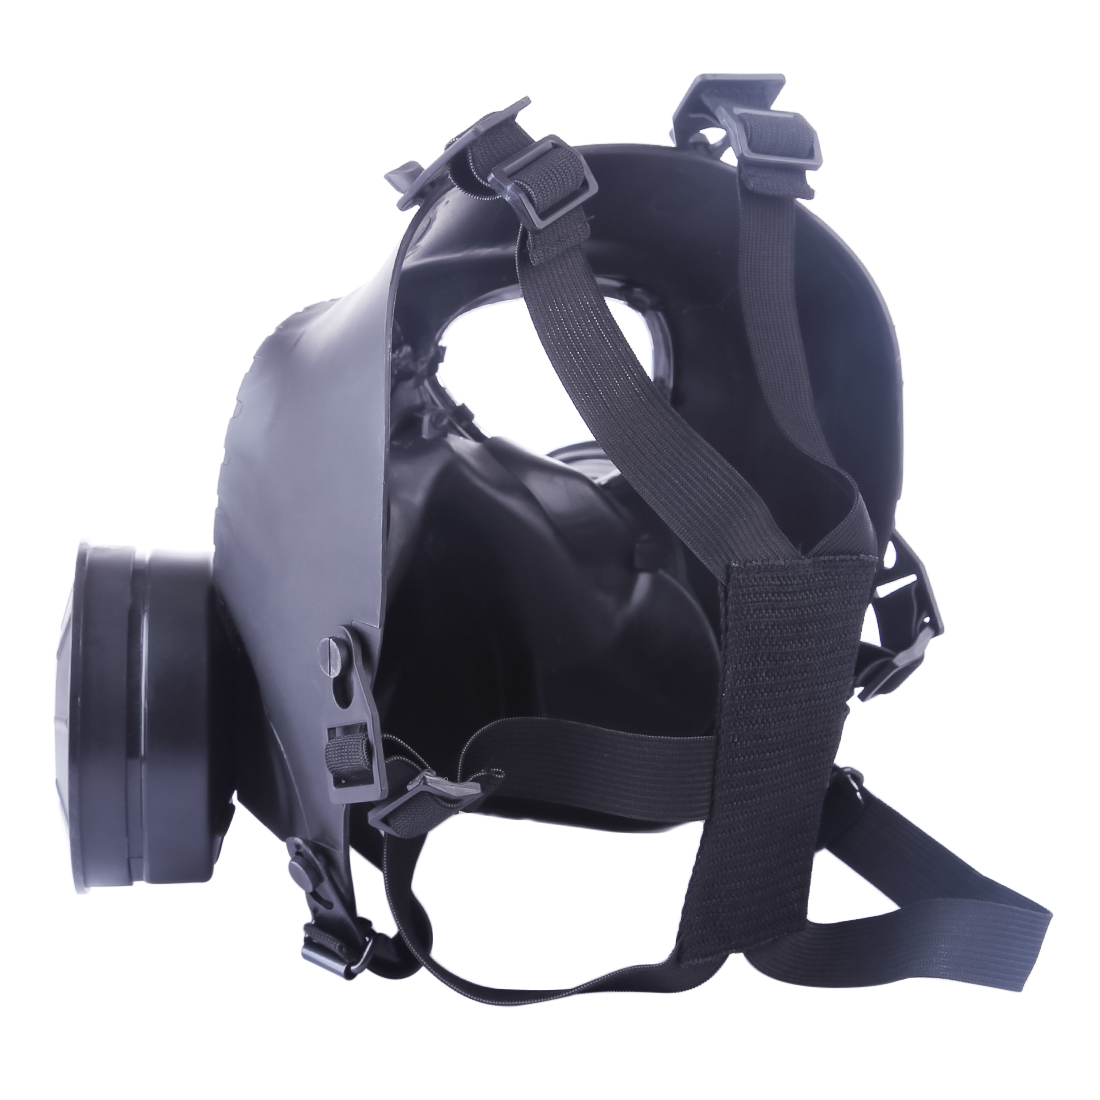 Paintball Accessories Black Reasonable Price Wst Head Paintball Mask Full Face Double Canister Electric Ventilative Biochemical Gas Mask